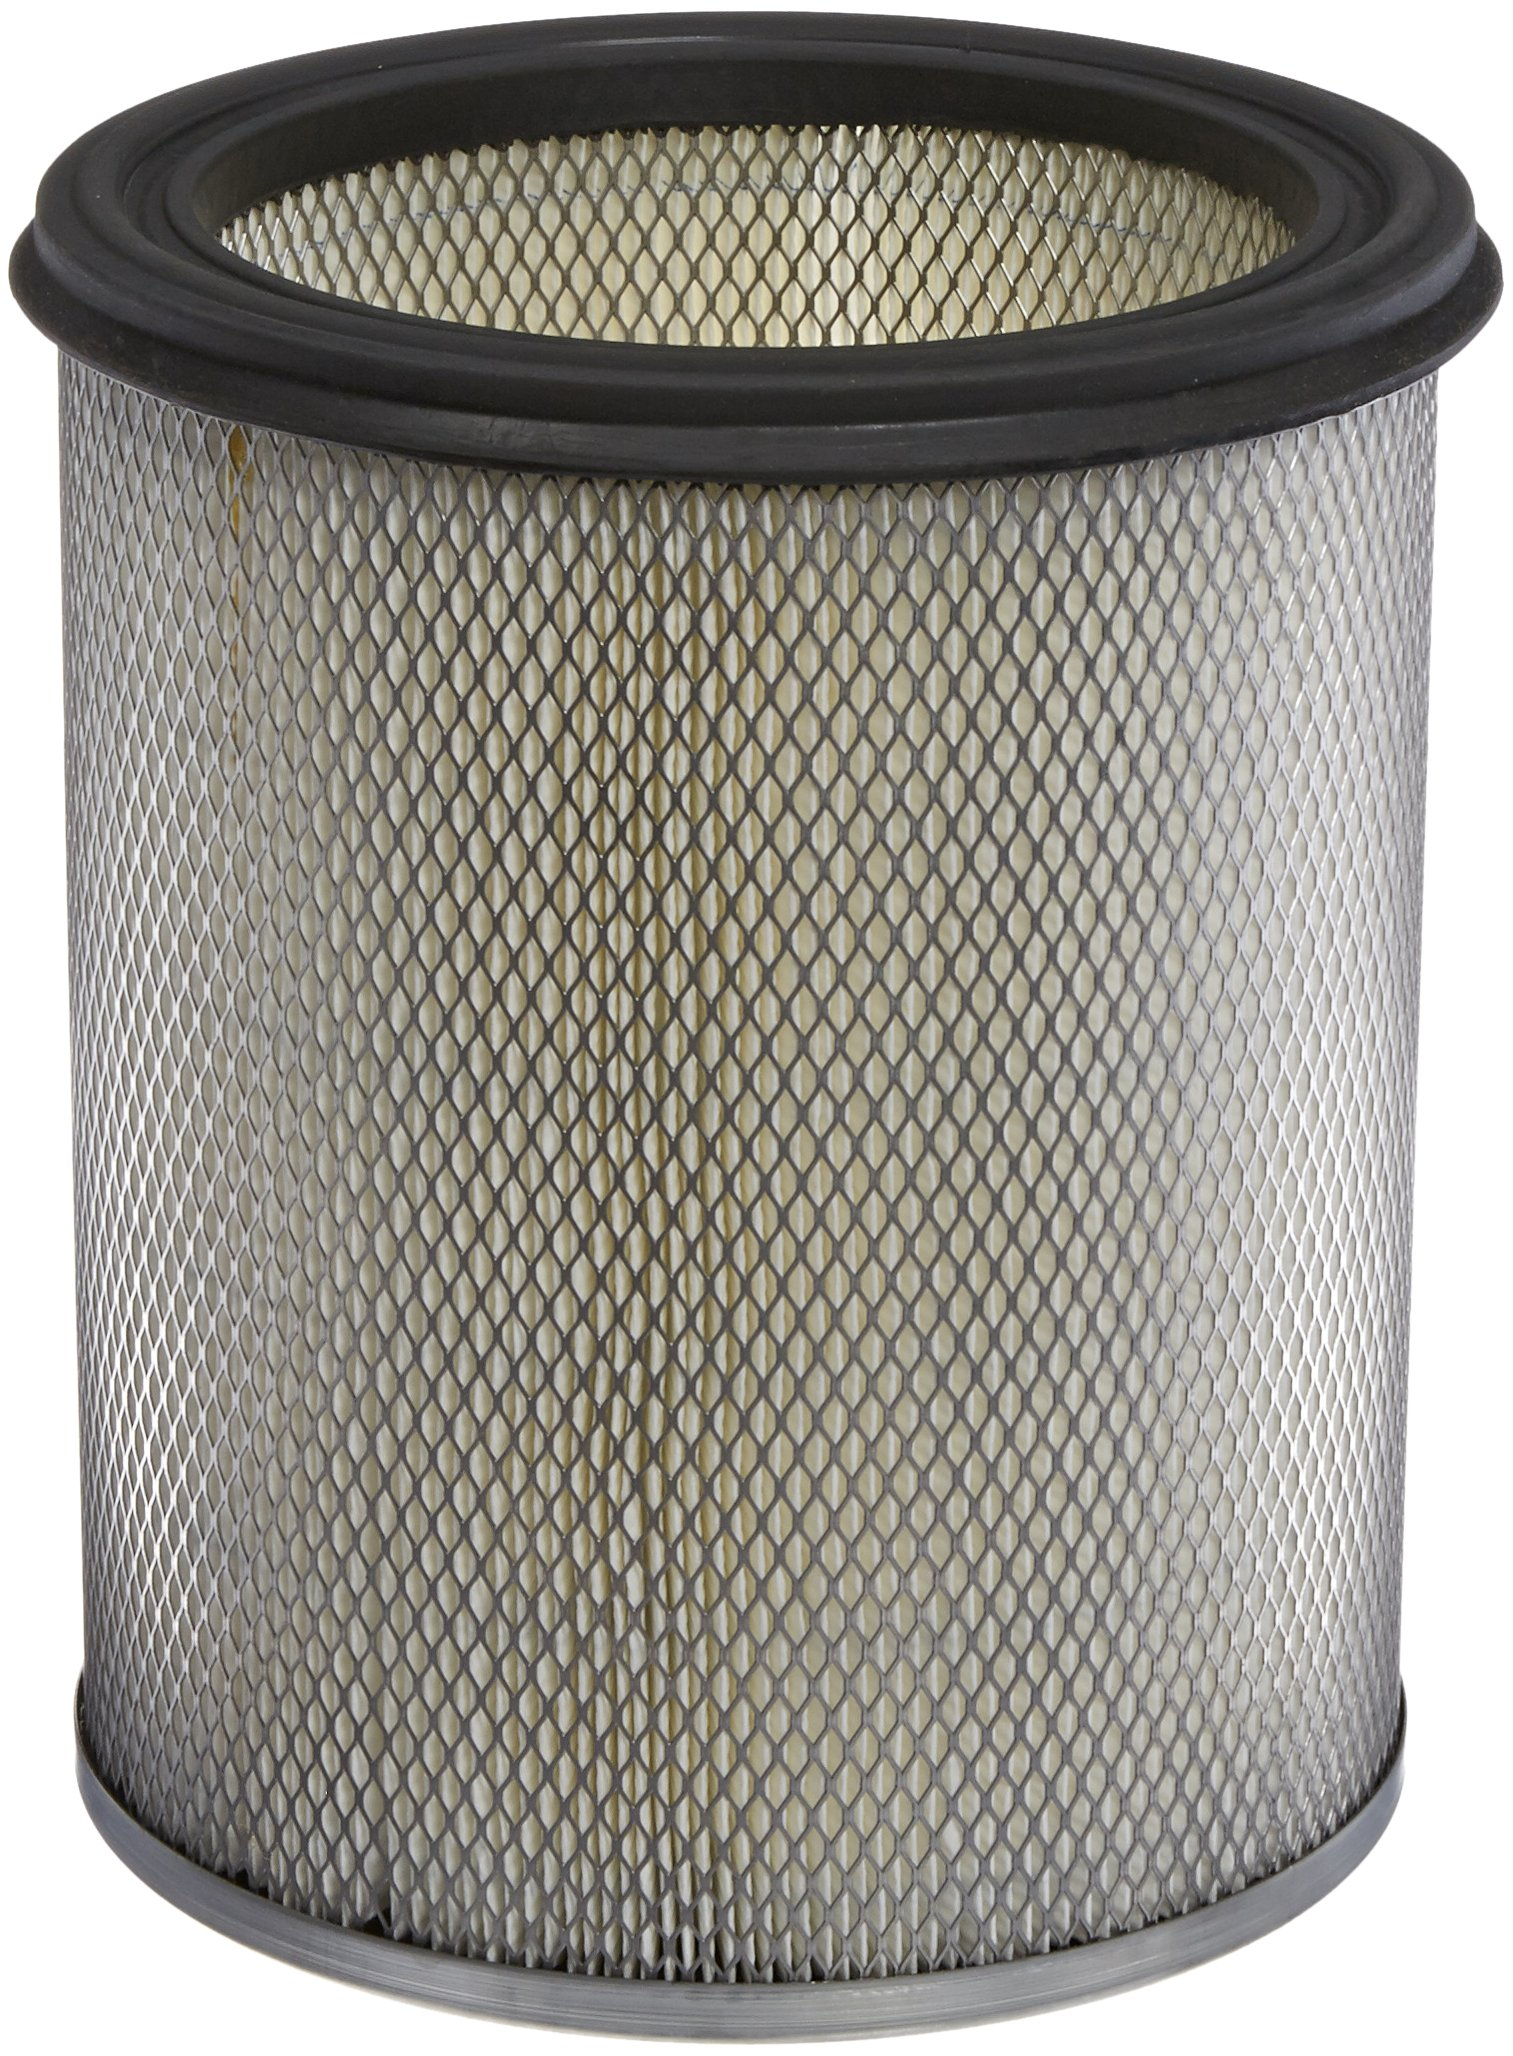 Guardair Standard Cartridge Filter N635 for 20, 30, 55 Gallon Pneumatic Drum Vacuums by Nortech